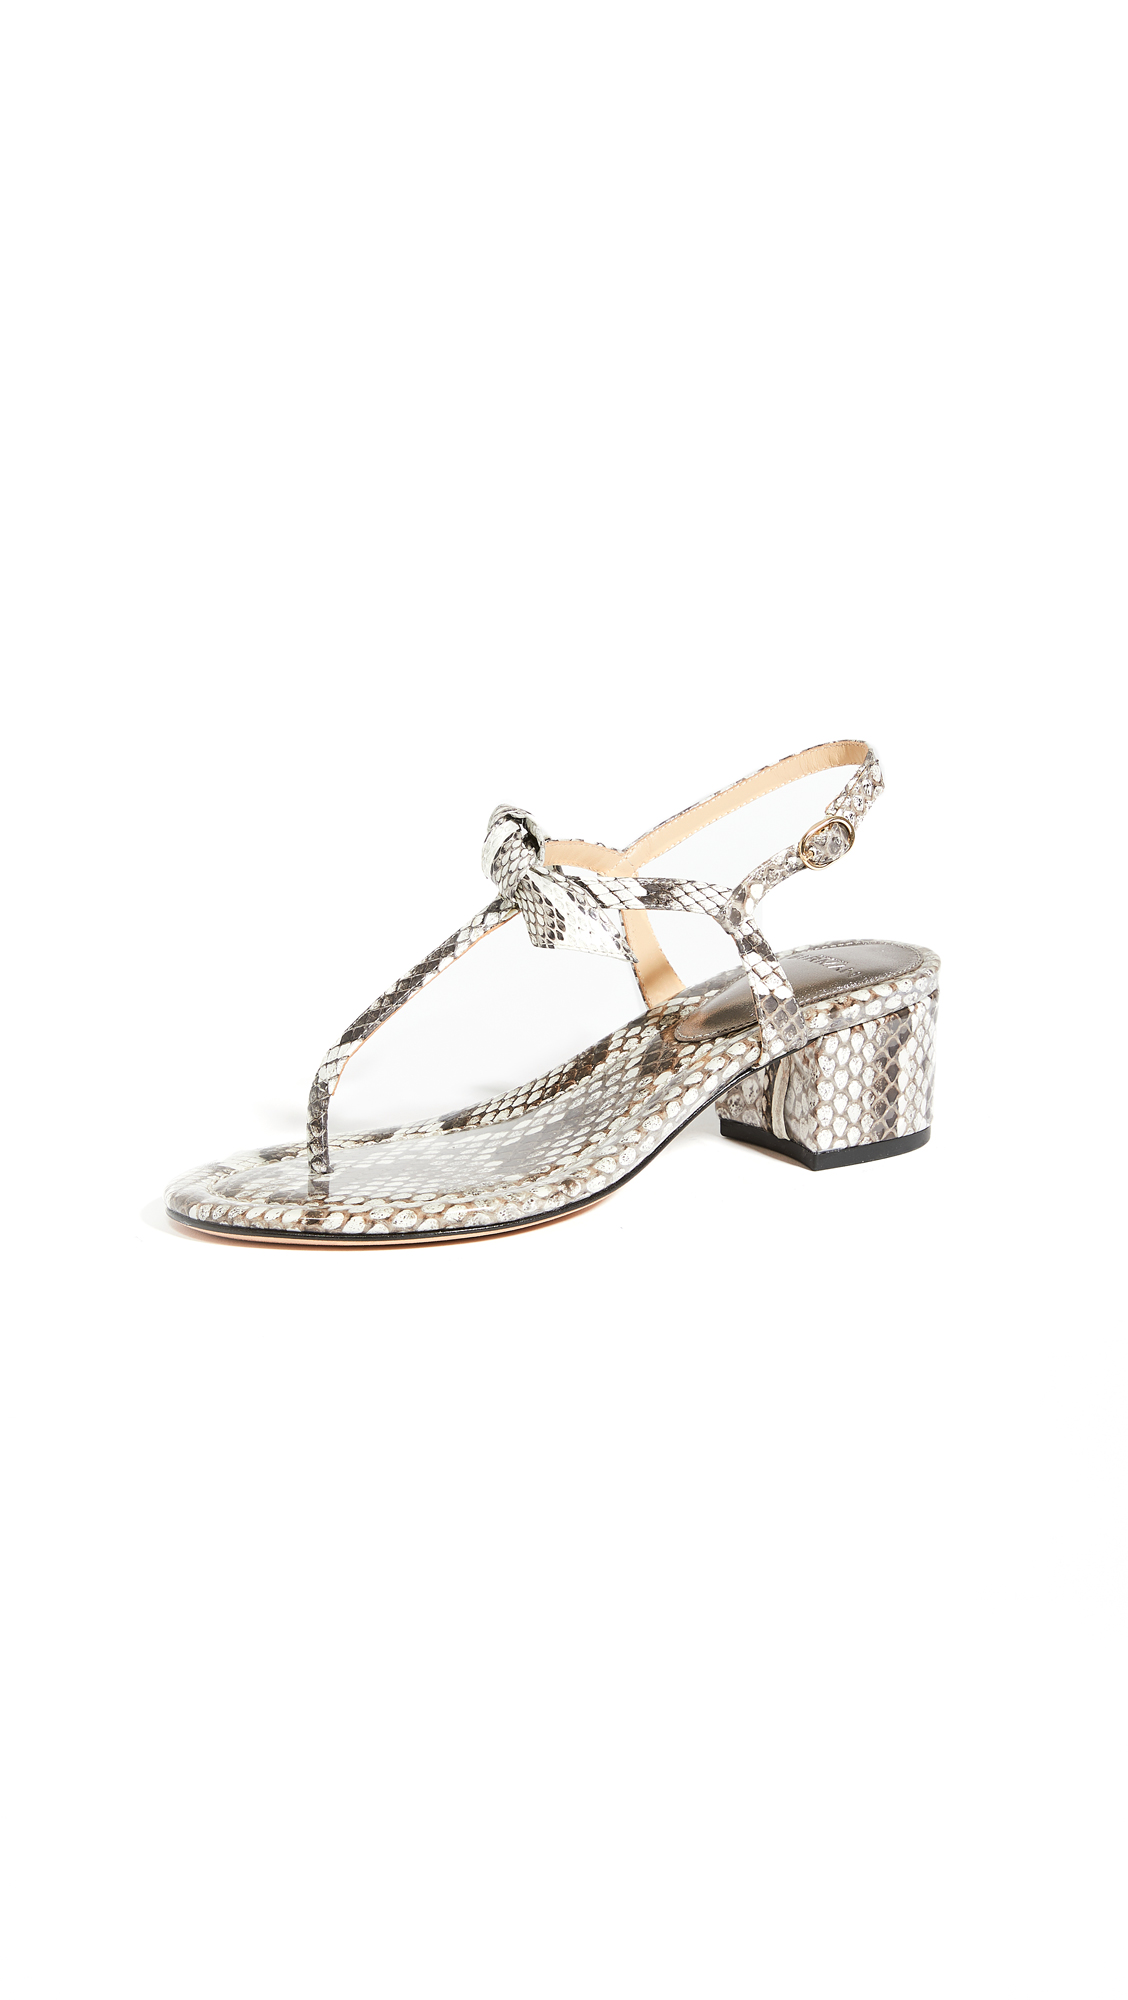 Buy Alexandre Birman 45mm Clarita T Sandals online, shop Alexandre Birman